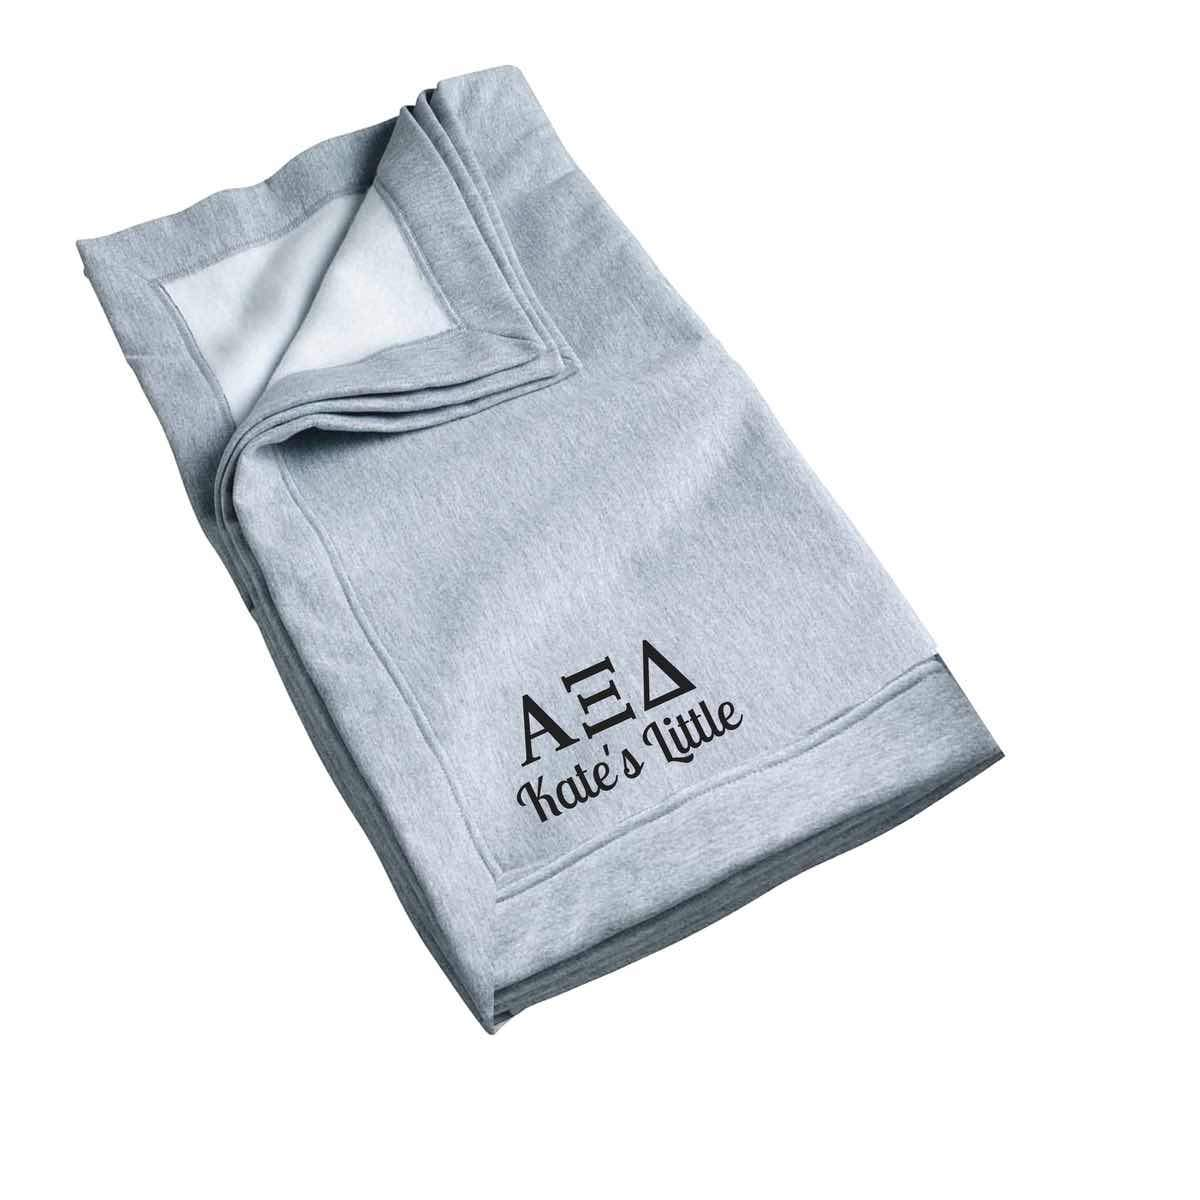 Alpha Xi Delta Little Blanket, Recommended One Size Fits All Personalized Big Little Gift